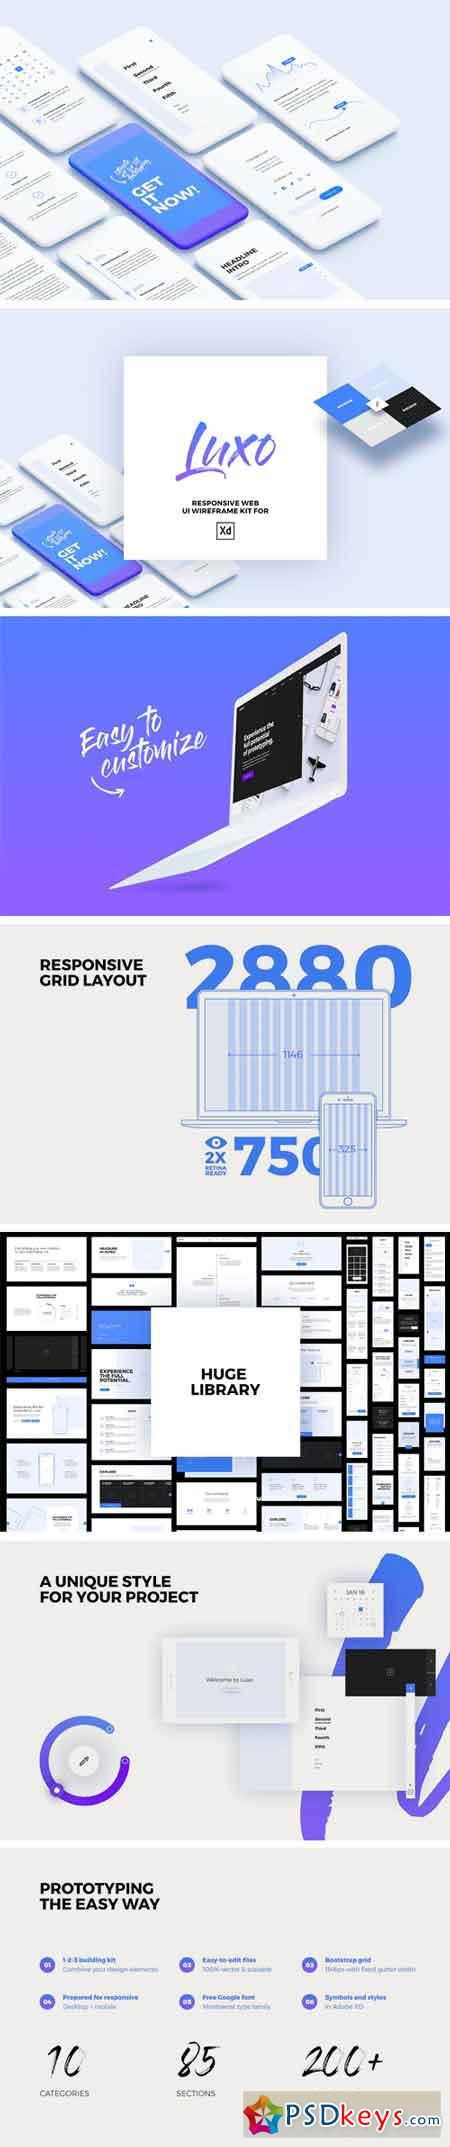 Wireframe      Free Download Photoshop Vector Stock image Via Torrent     Luxo XD Responsive Wireframe UI Kit 1973855